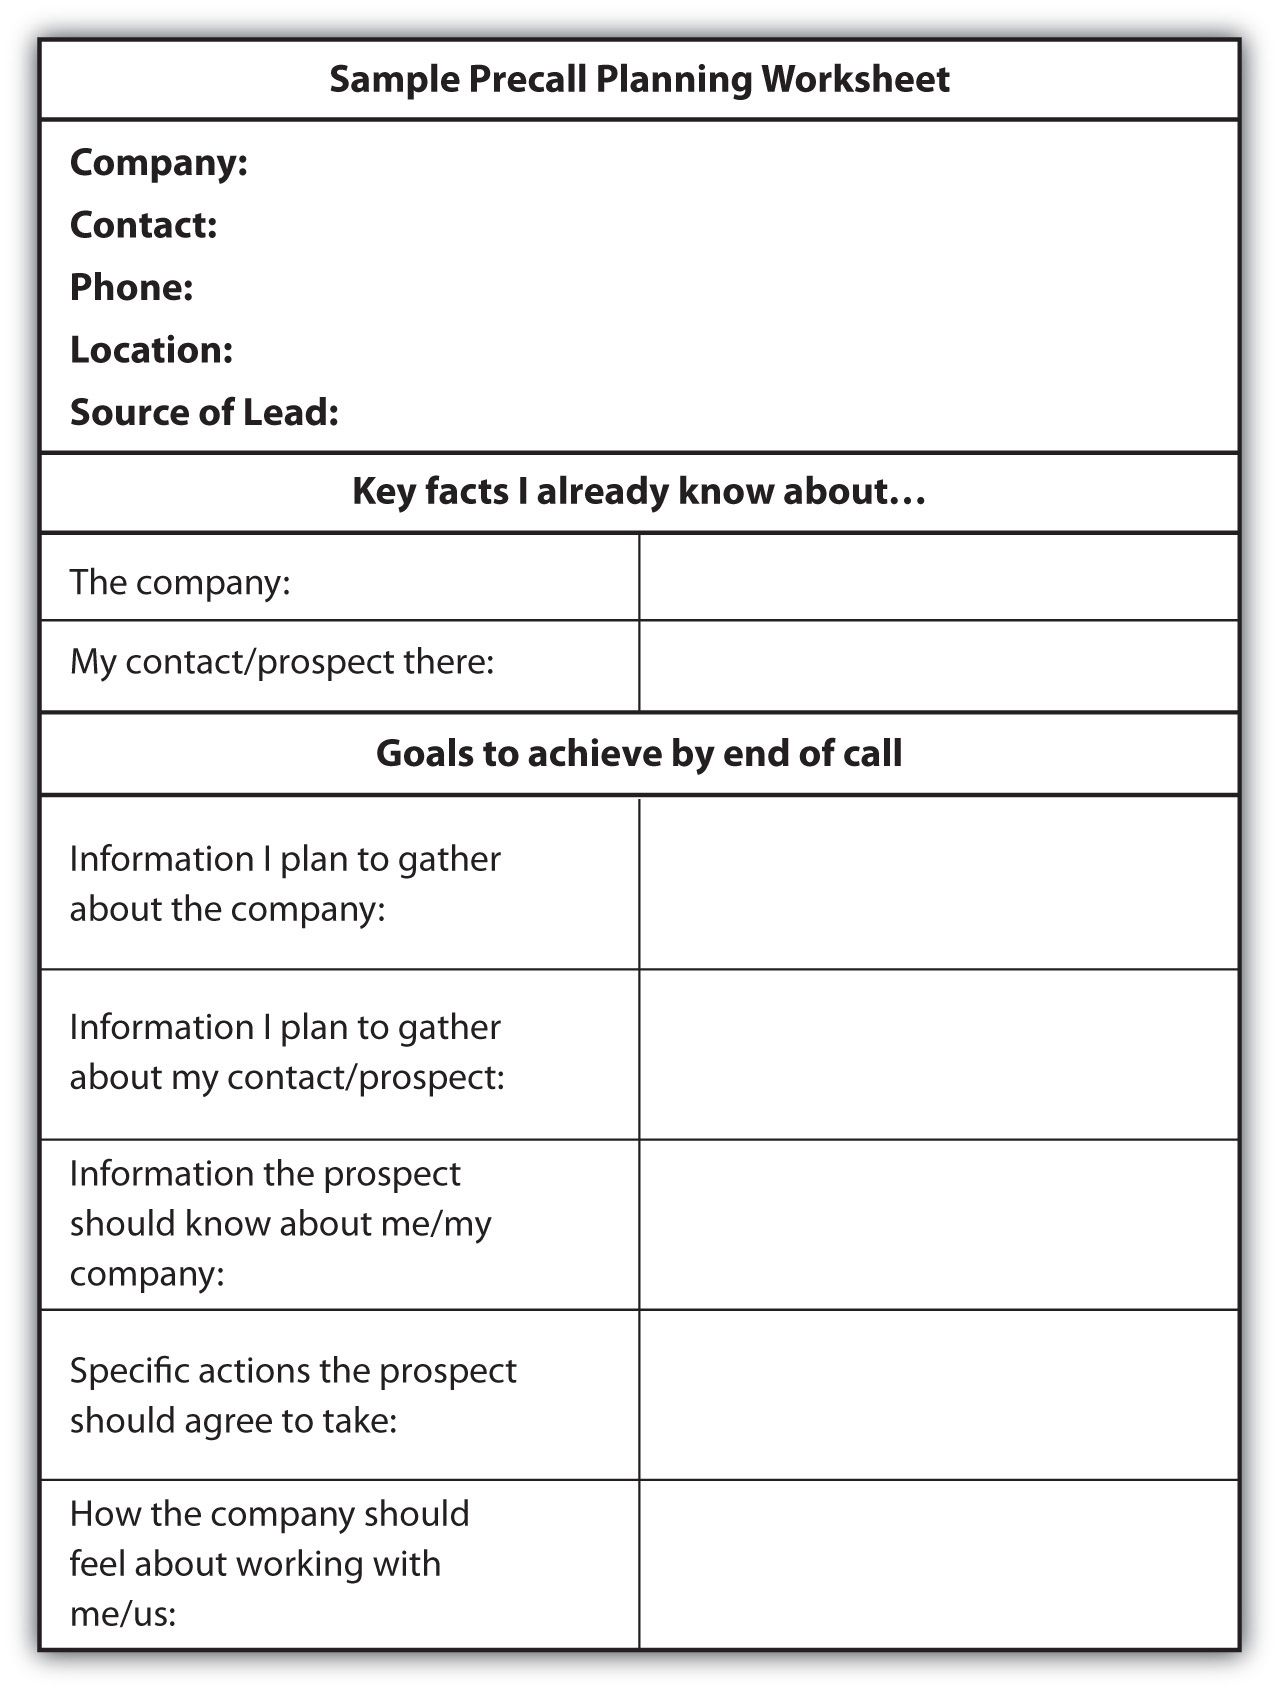 Sales Call Planning Worksheet Informative topics on this site ...